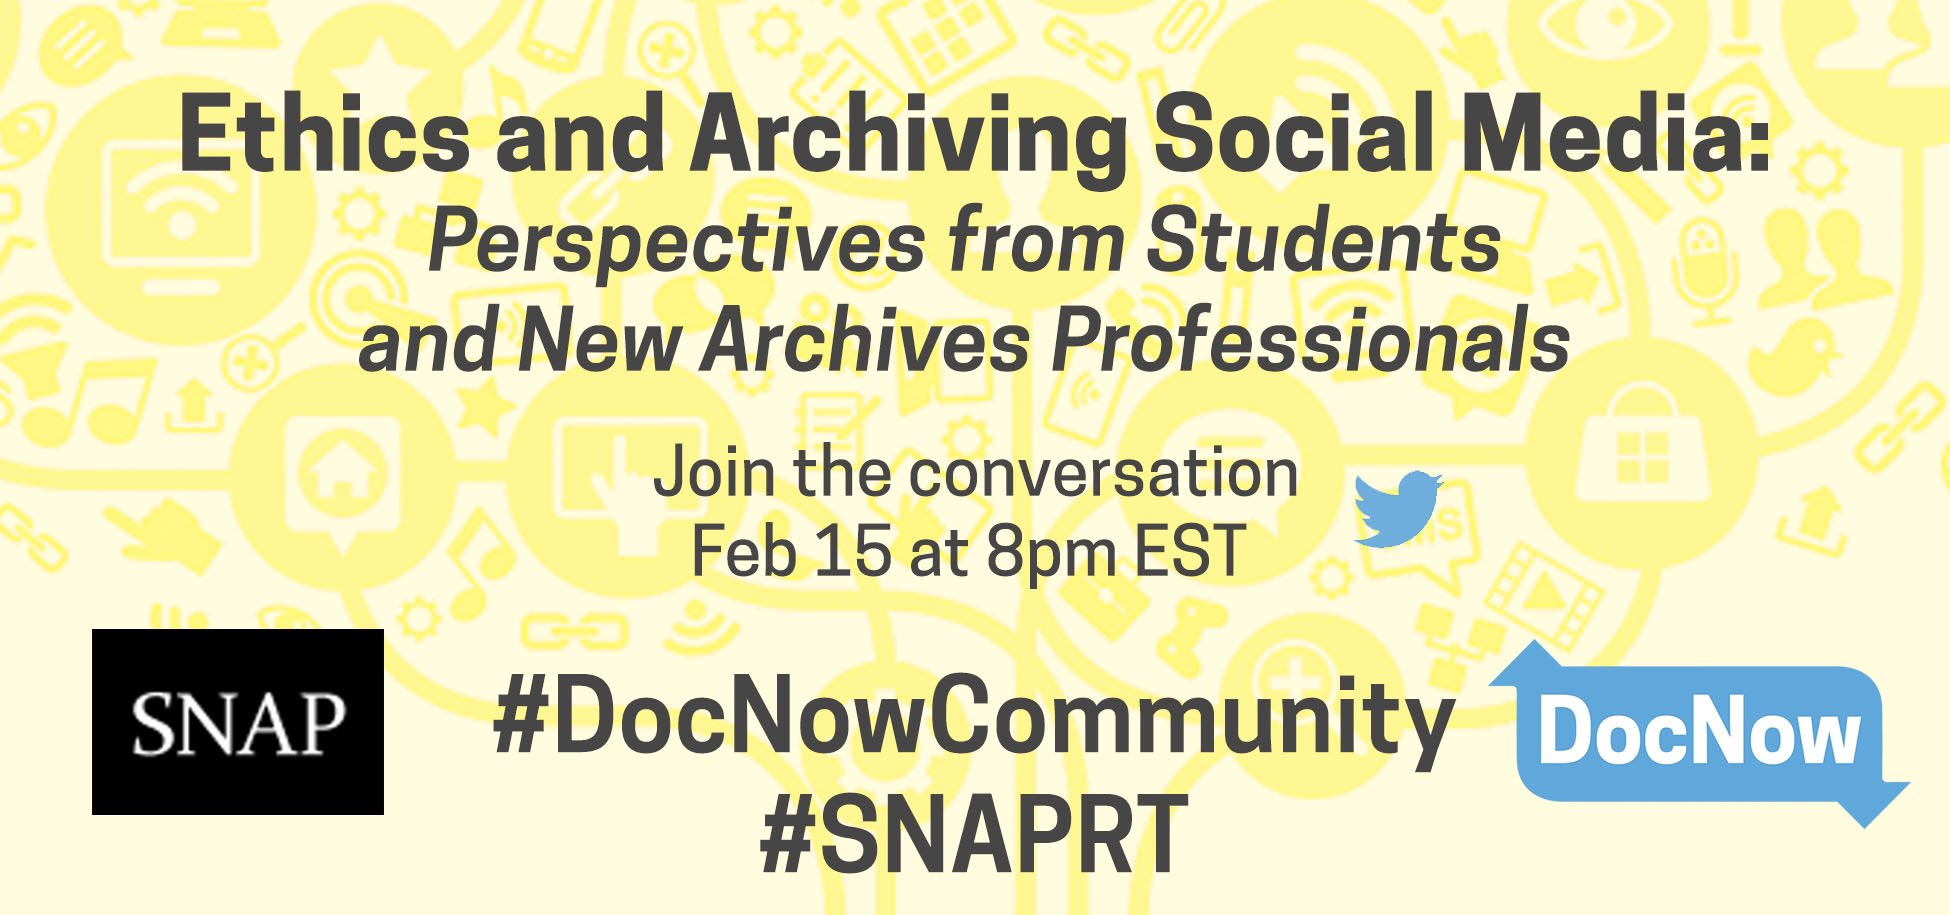 We're hosting a twitter chat with the @SNAP_Section on February 15th at 8pm EST. Join us. #snaprt #docnowcommunity https://t.co/y6fN8frLvL